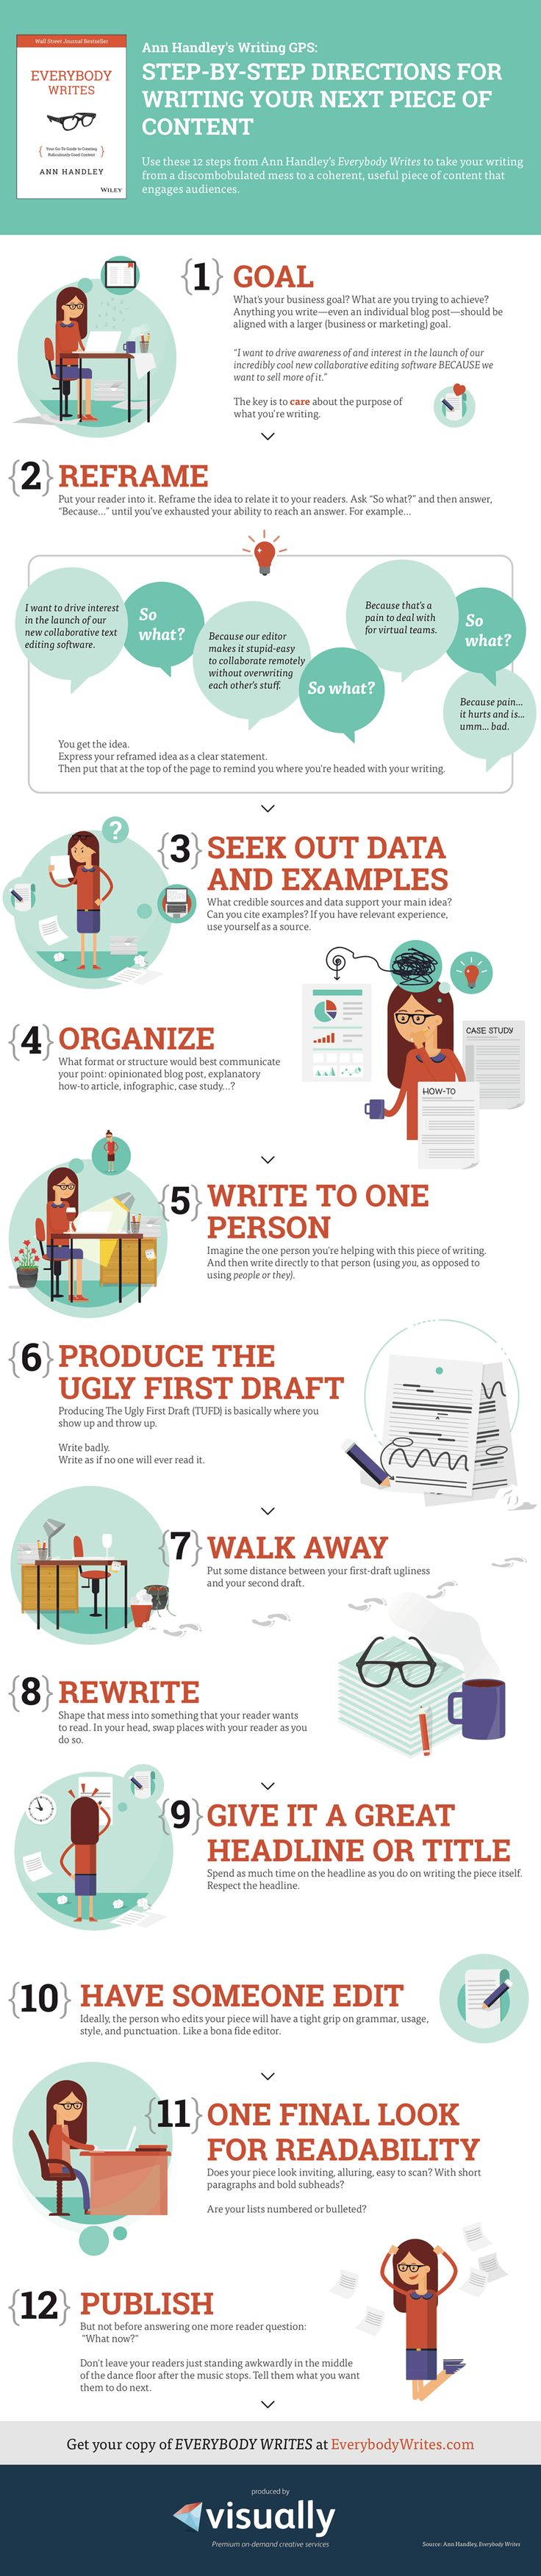 A 12 step guide to writing content for your site that increases interest and engagement.